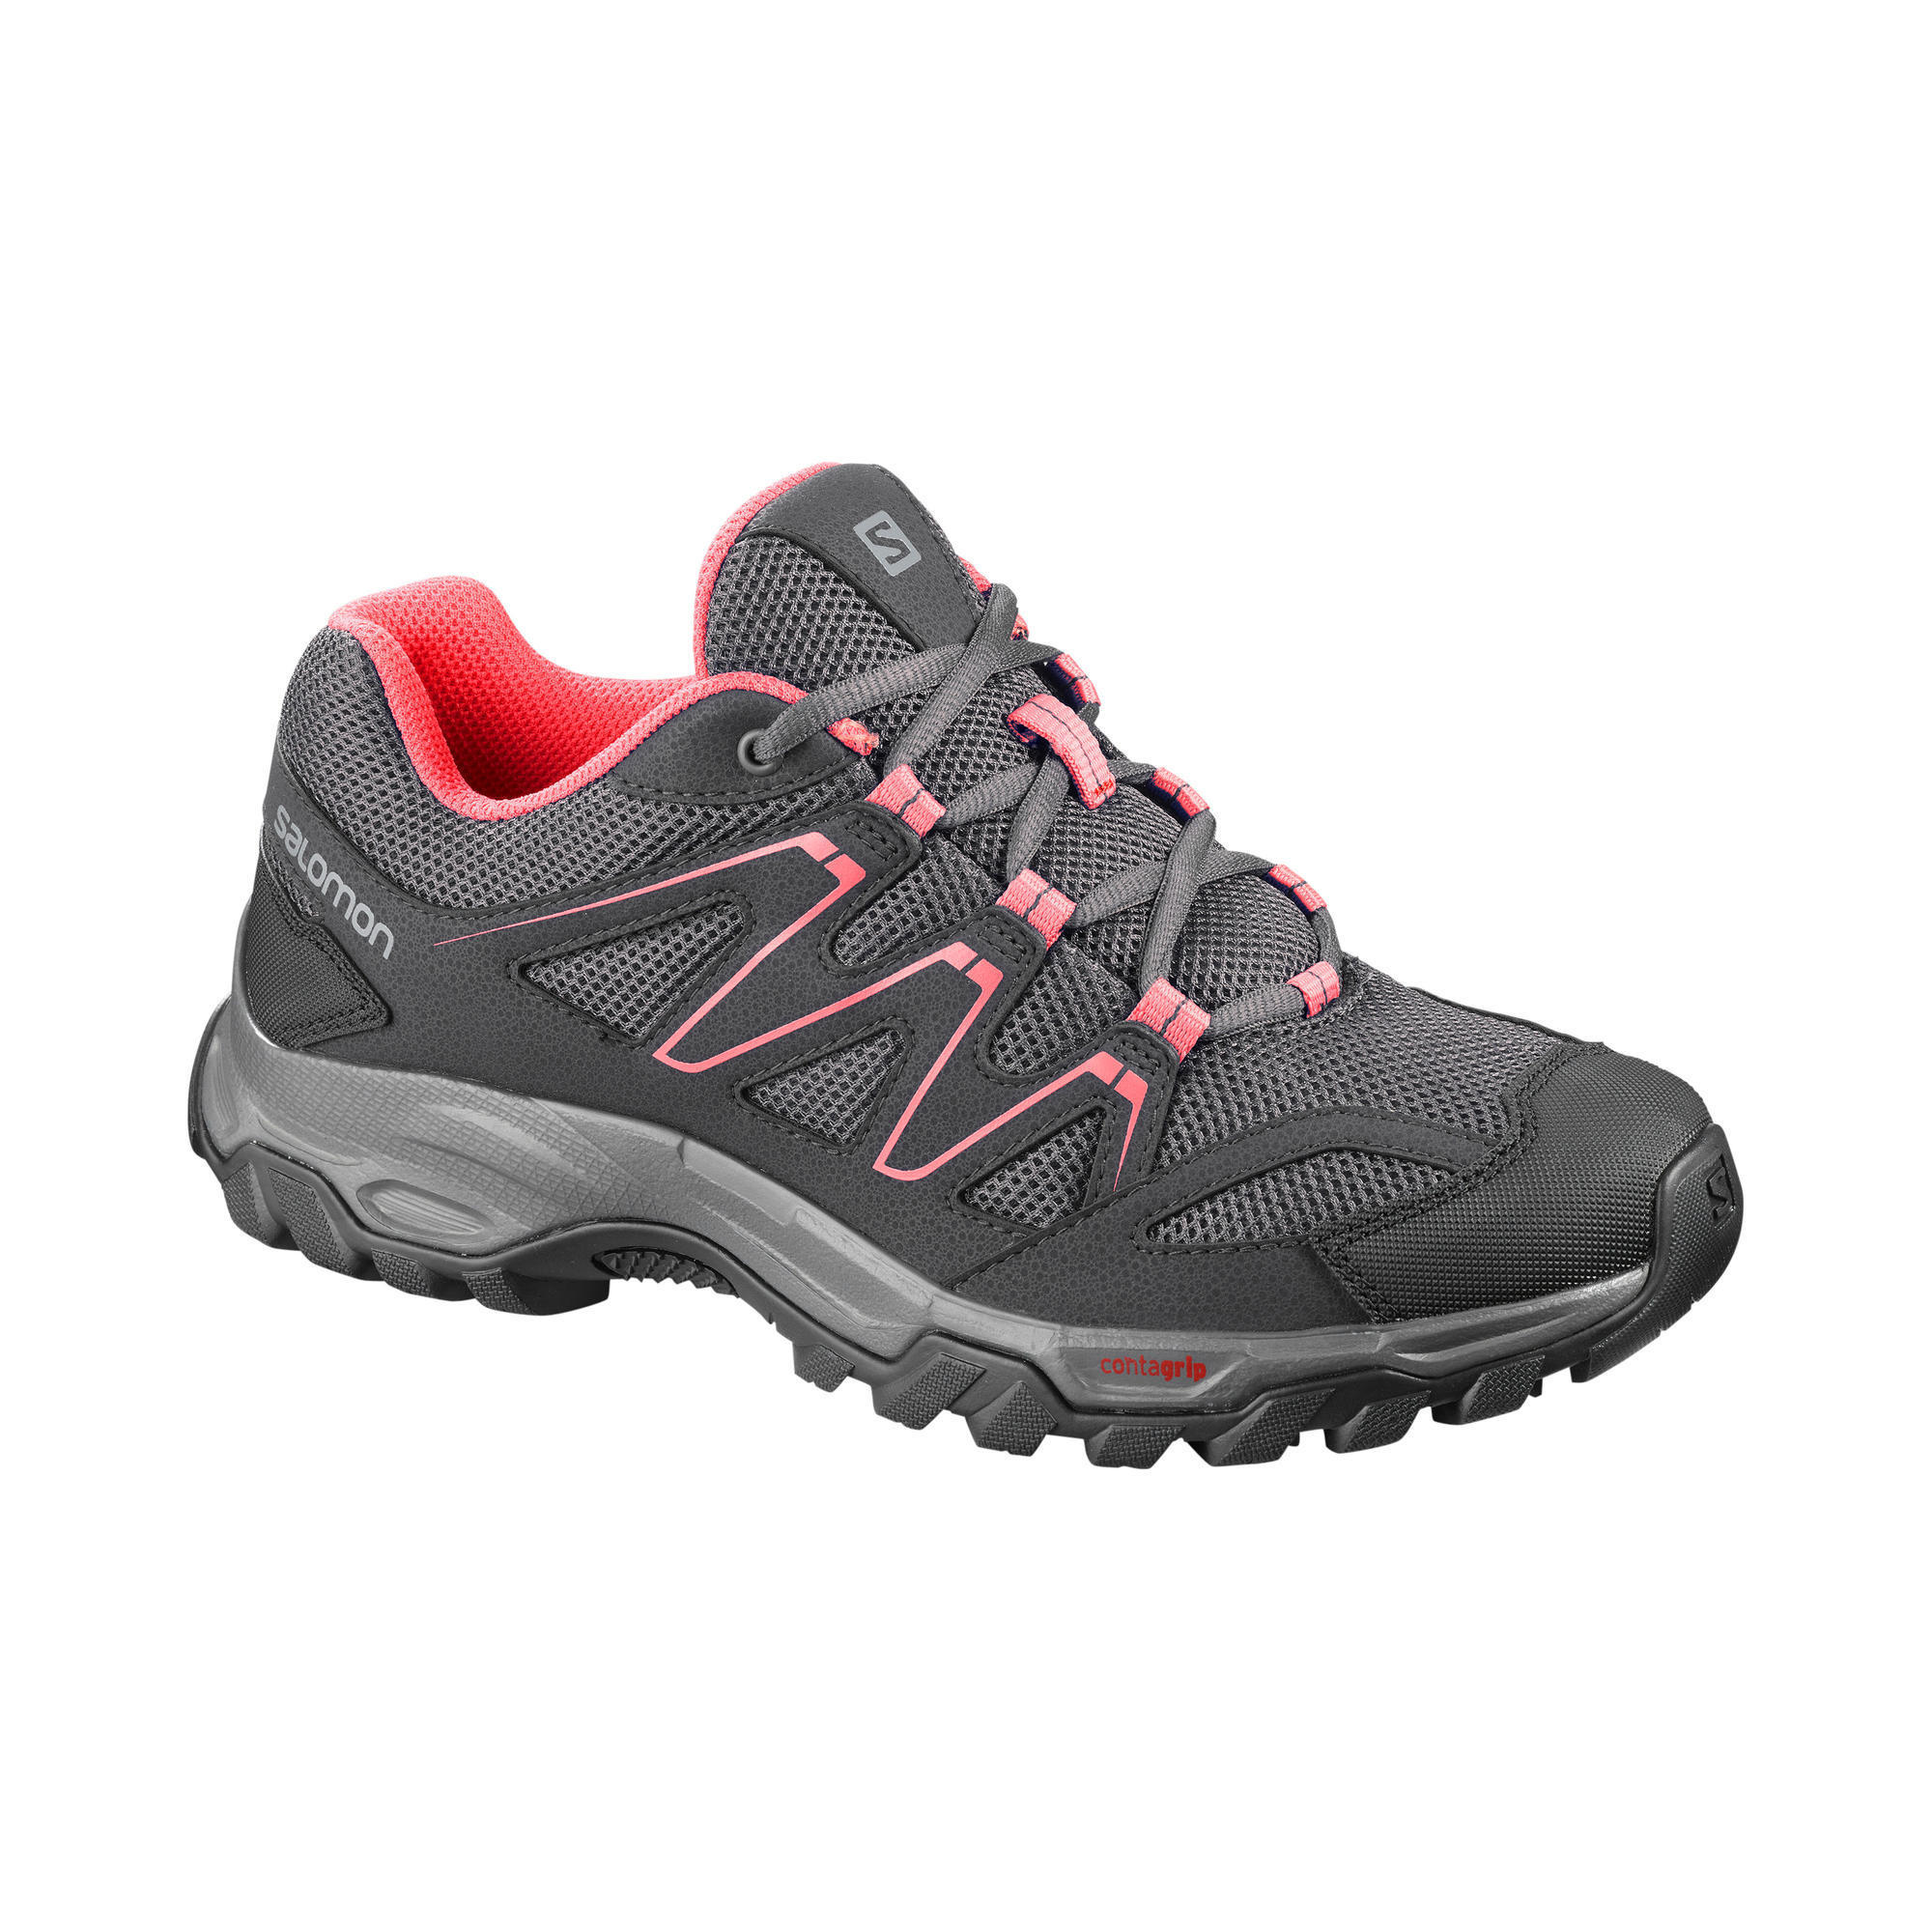 zapatos salomon decathlon ventajas